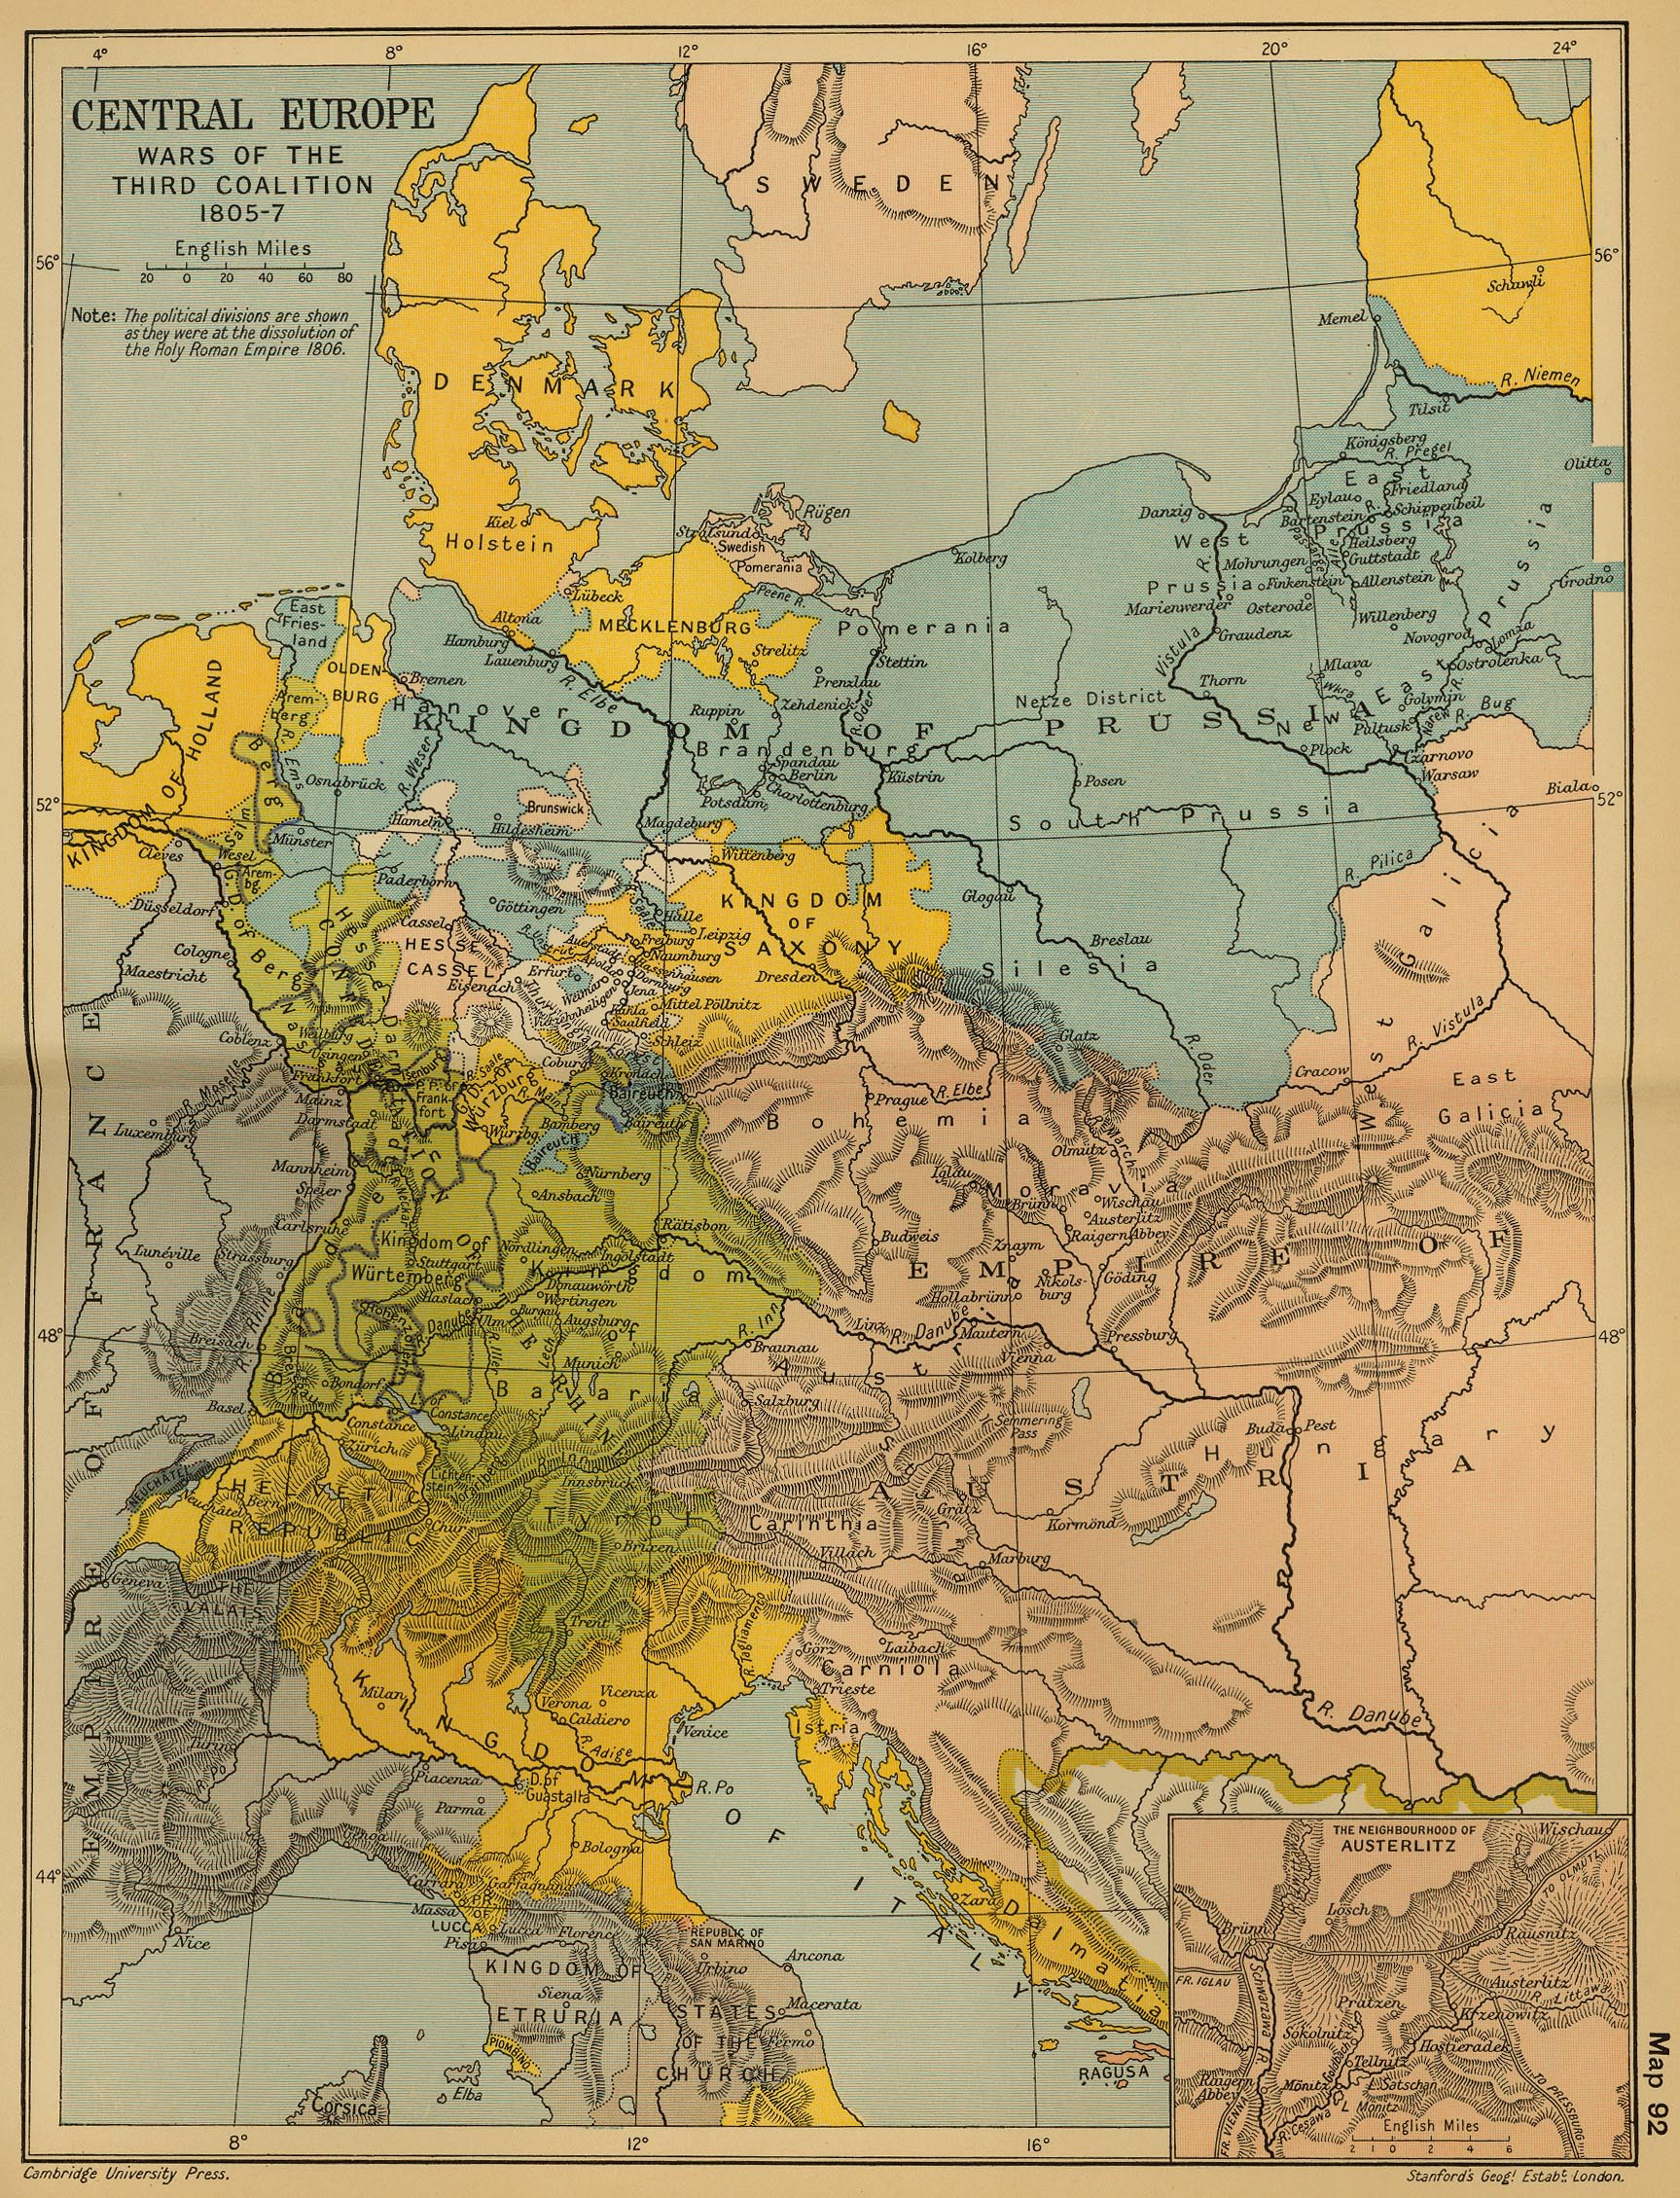 Map of Central Europe 18051807 The War of the Third Coalition